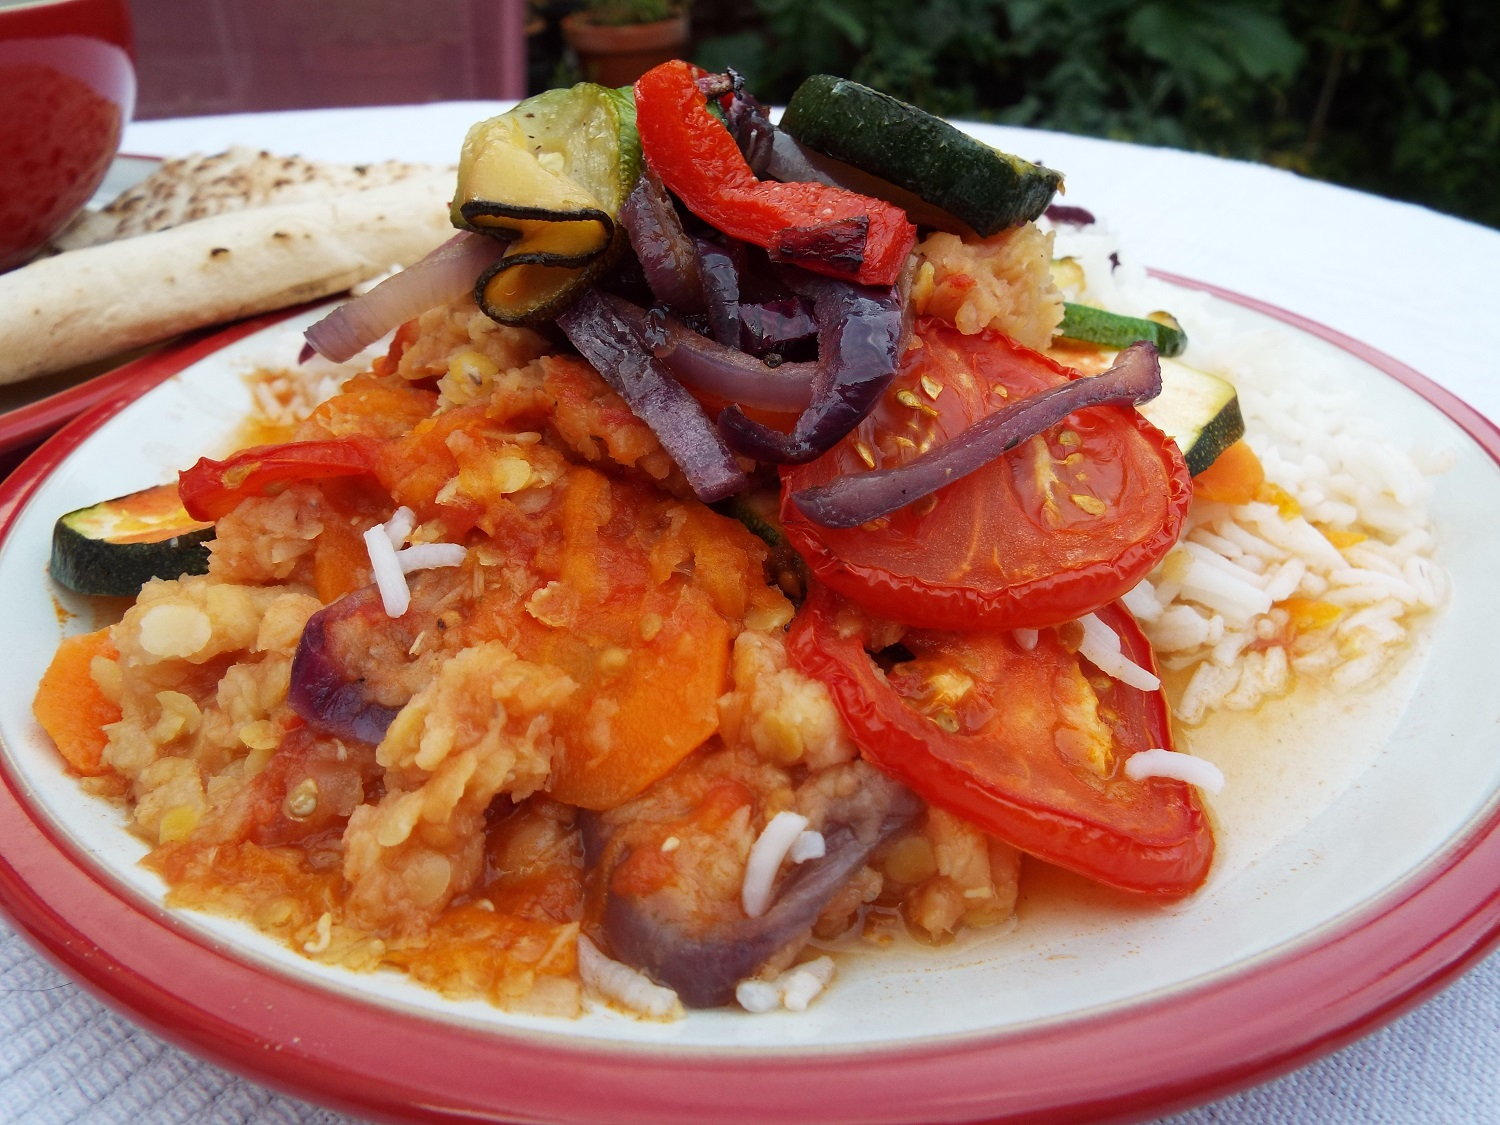 Vegetable Stack - This uses the lentil, carrot and tomato soup as a sauce over rice, and this one is topped with extra vegetables which can be either oven baked or fried - carrot slices, red onion, courgettes, red pepper and tomatoes. Any vegetables to hand can be used. Add seasoning.Serve with extra soup and flat bread (or a rye bread)to 'bulk out' dinner.